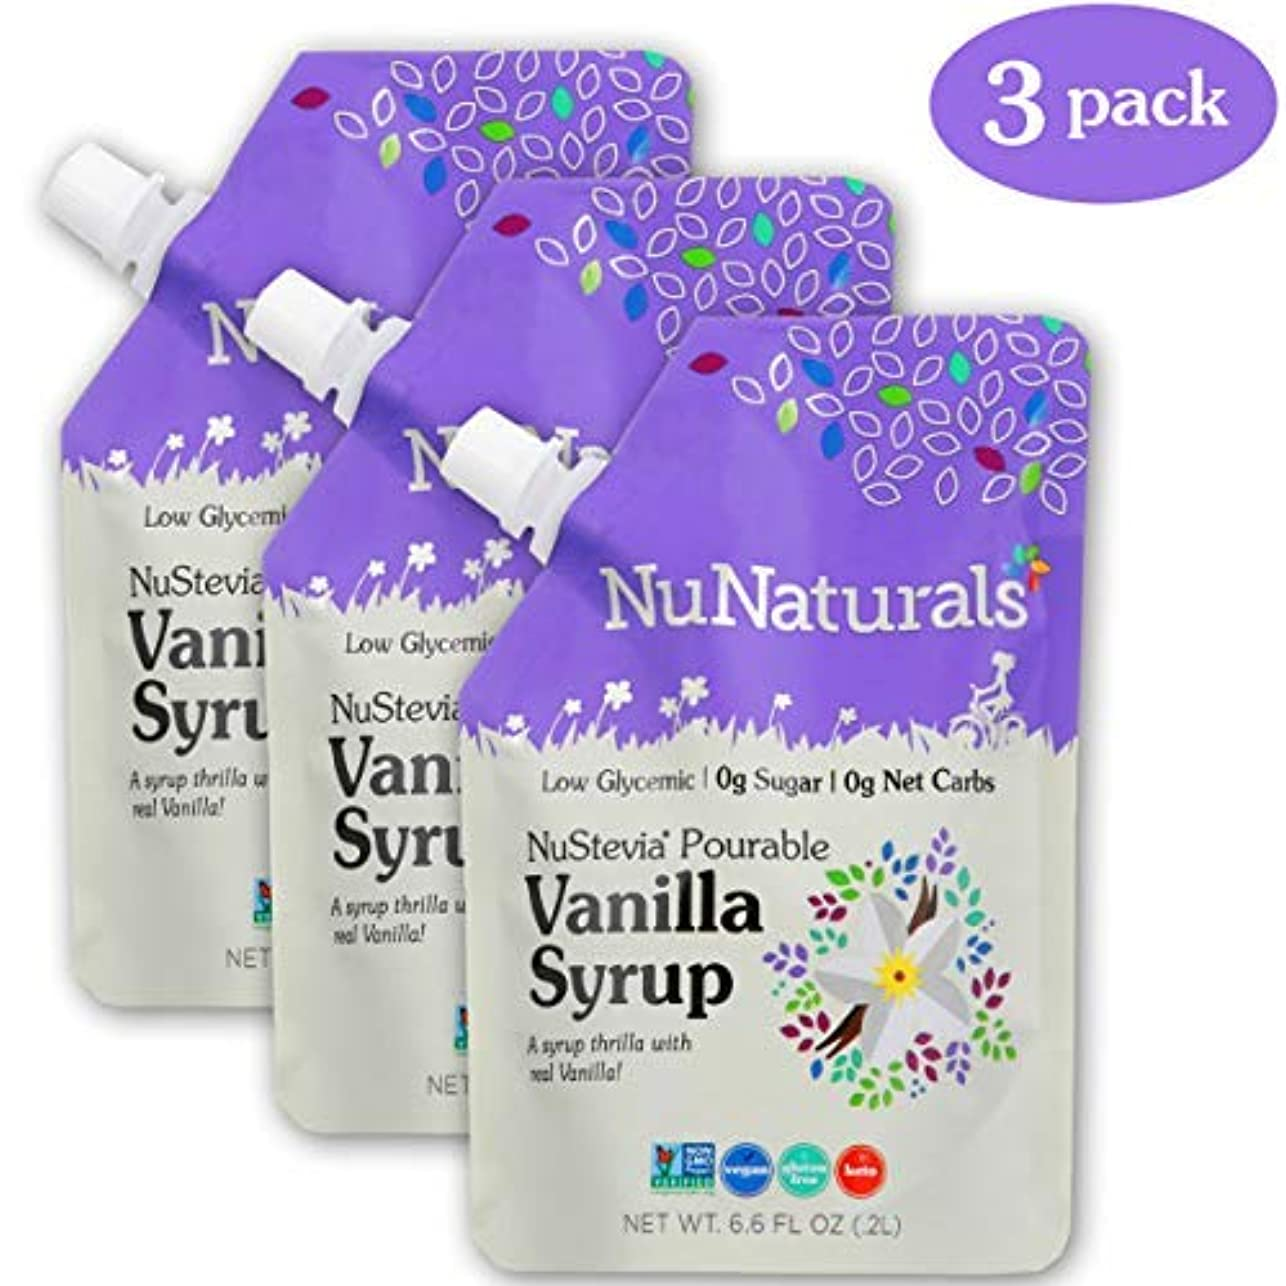 本質的ではない安全でない斧NuNaturals Vanilla Flavored Sugar-Free Pourable Syrup 0 Net Carbs (Vanilla Syrup 3 Pack 6.6 oz) [並行輸入品]